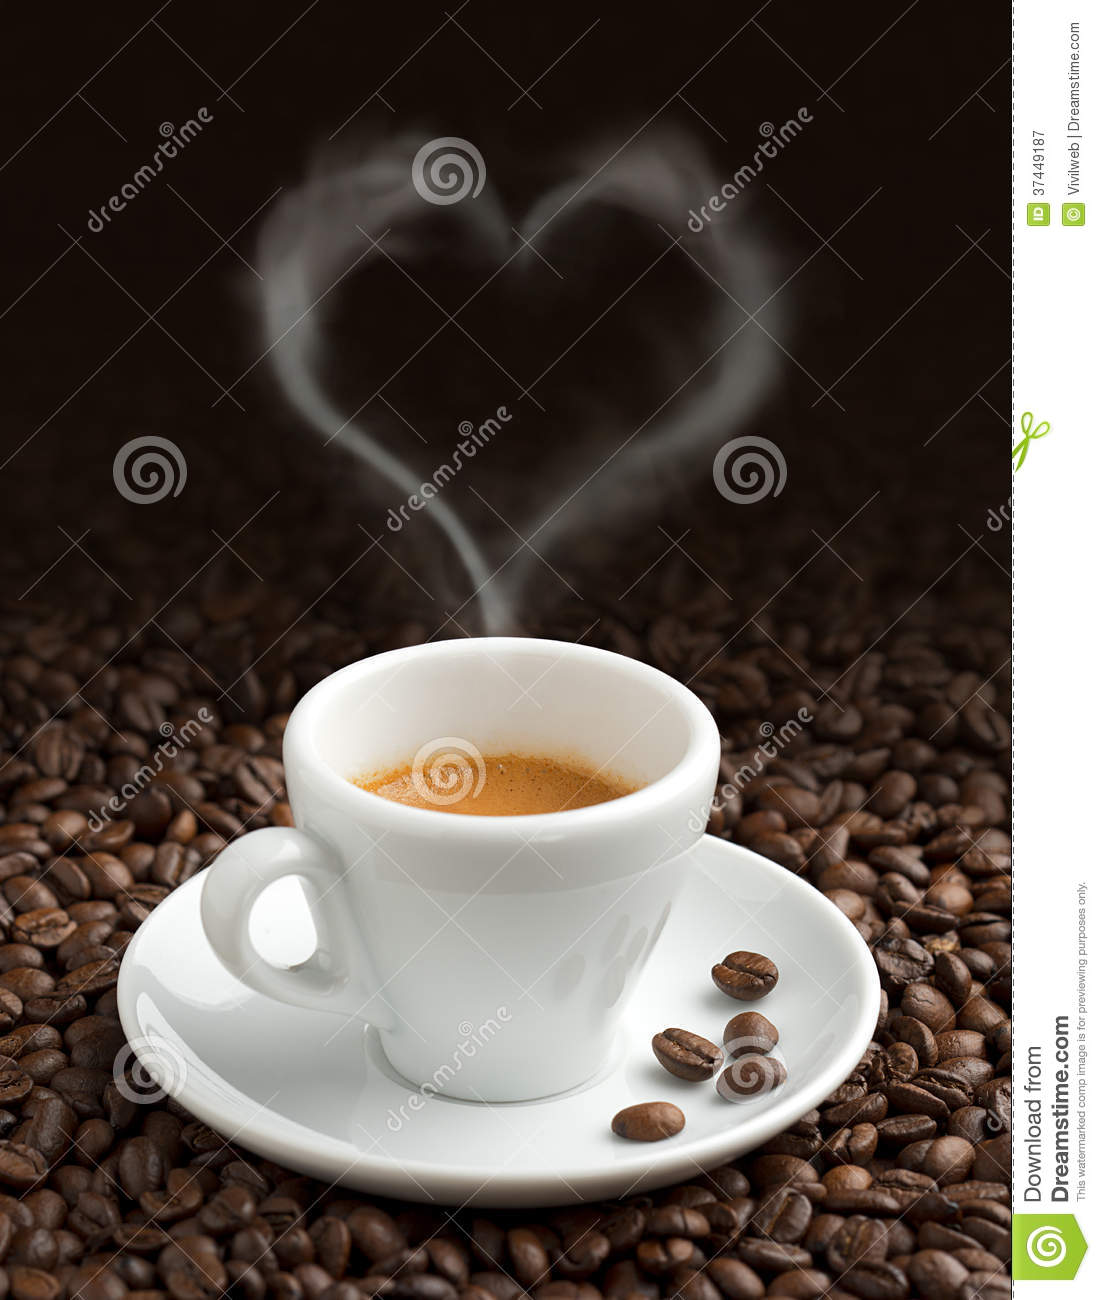 Love For Coffee Stock Image. Image Of Fresh, Aromatic